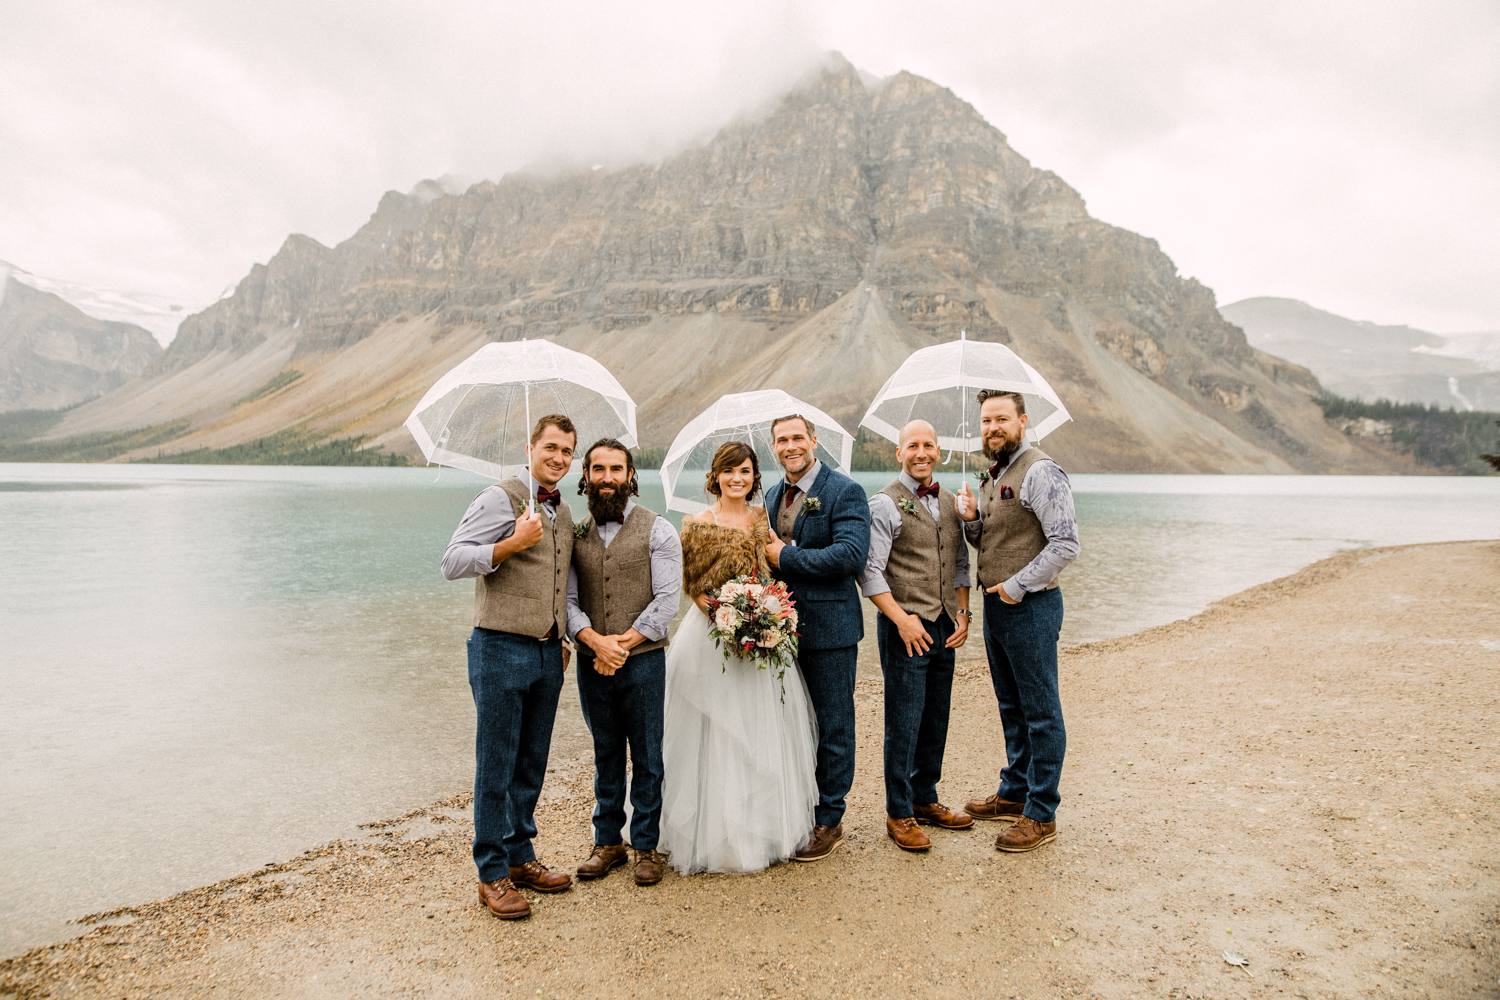 Wedding Party Photos in the Rain